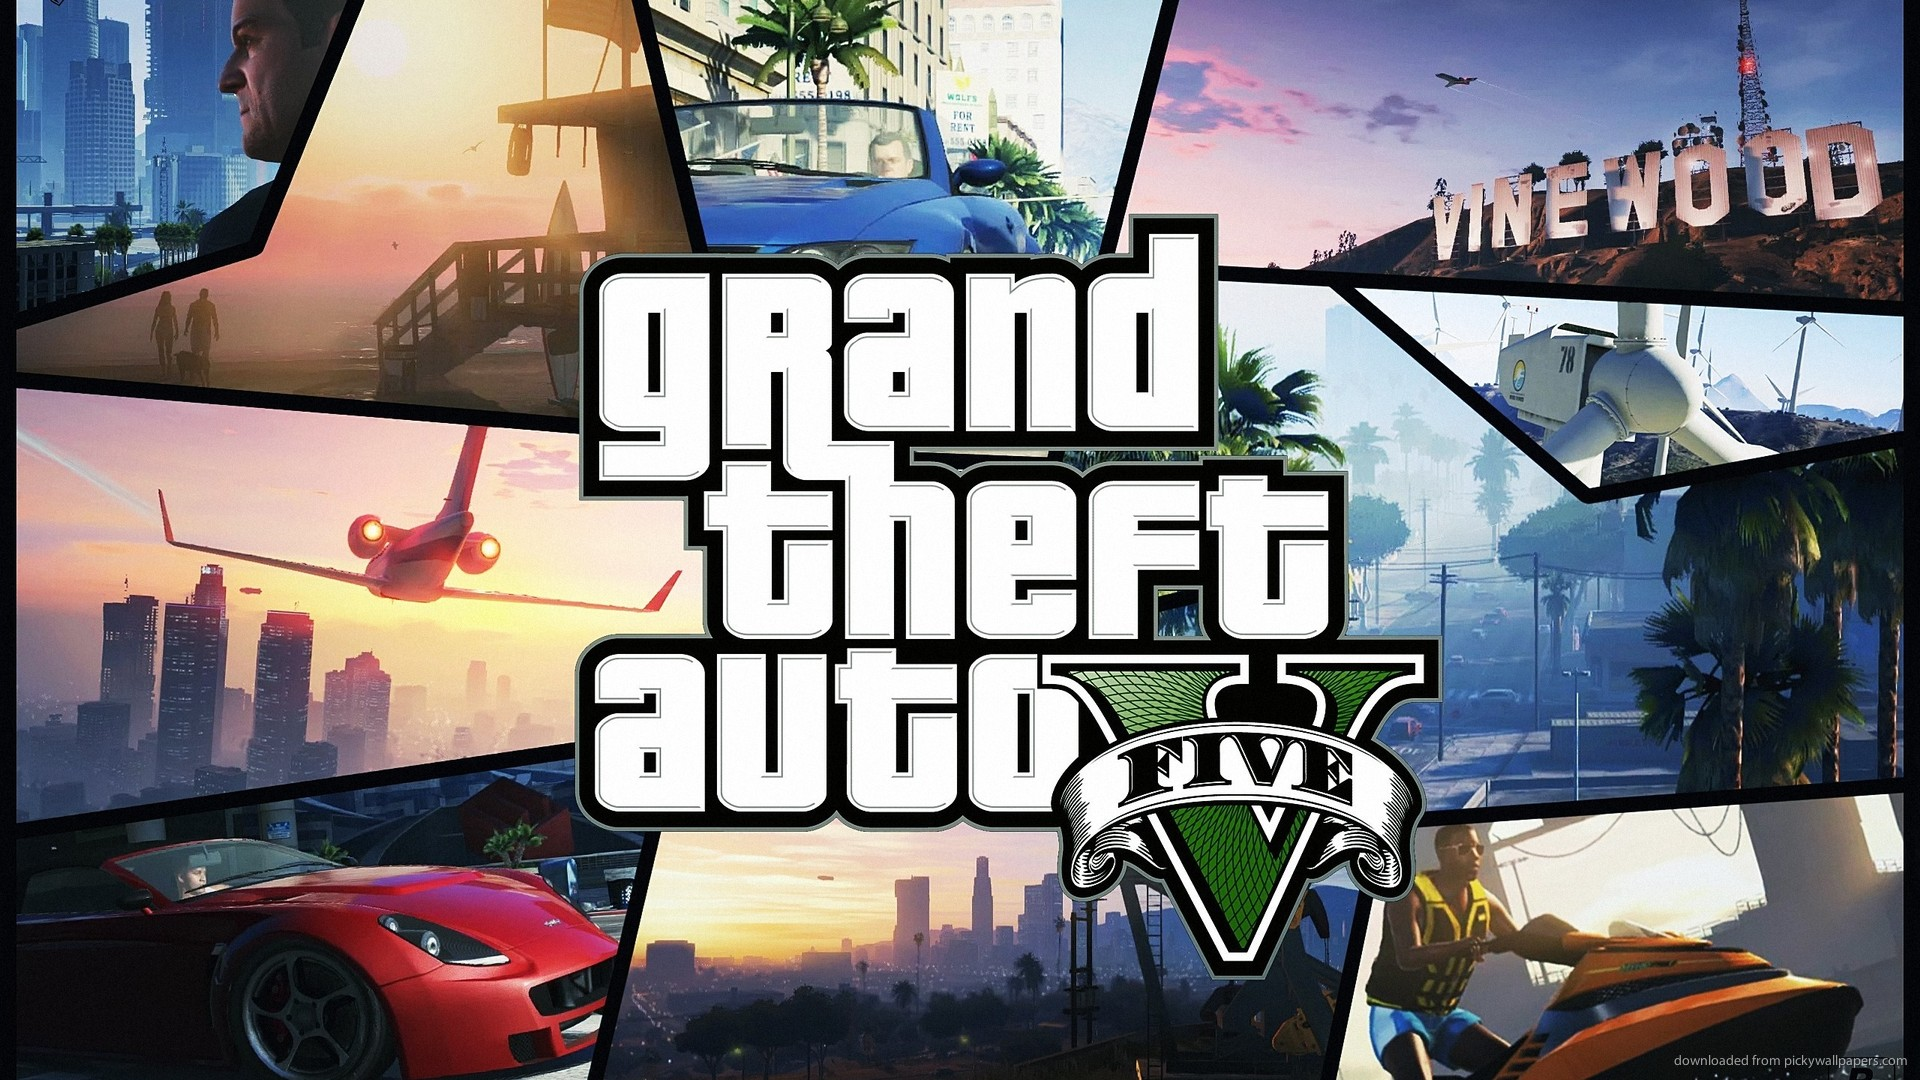 Free download GTA V Wallpaper HD Background [1920x1080] for your